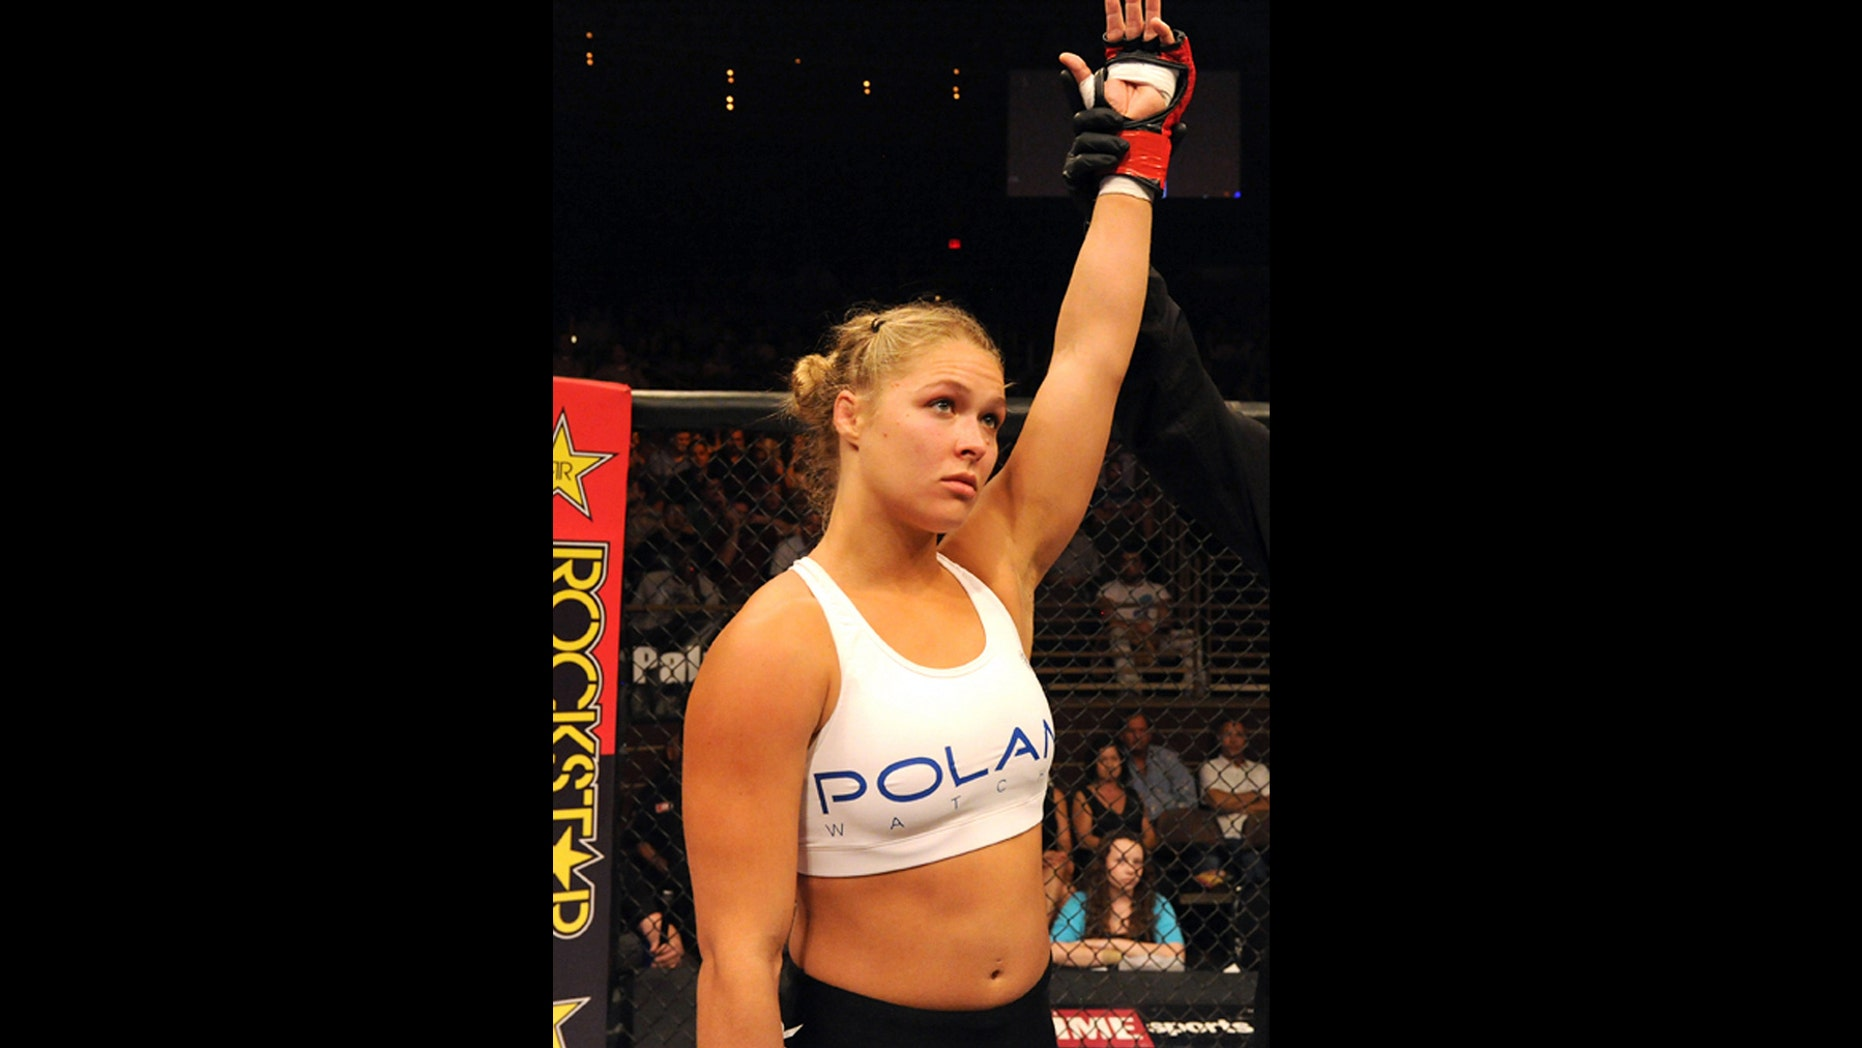 LAS VEGAS - AUGUST 12:  Ronda Rousey after her victory over Sarah D'Alelio at the Pearl at the Palms on August 12, 2011 in Las Vegas, Nevada.  (Photo by Kari Hubert/Forza LLC/Forza LLC via Getty Images) *** Local Caption *** Ronda Rousey